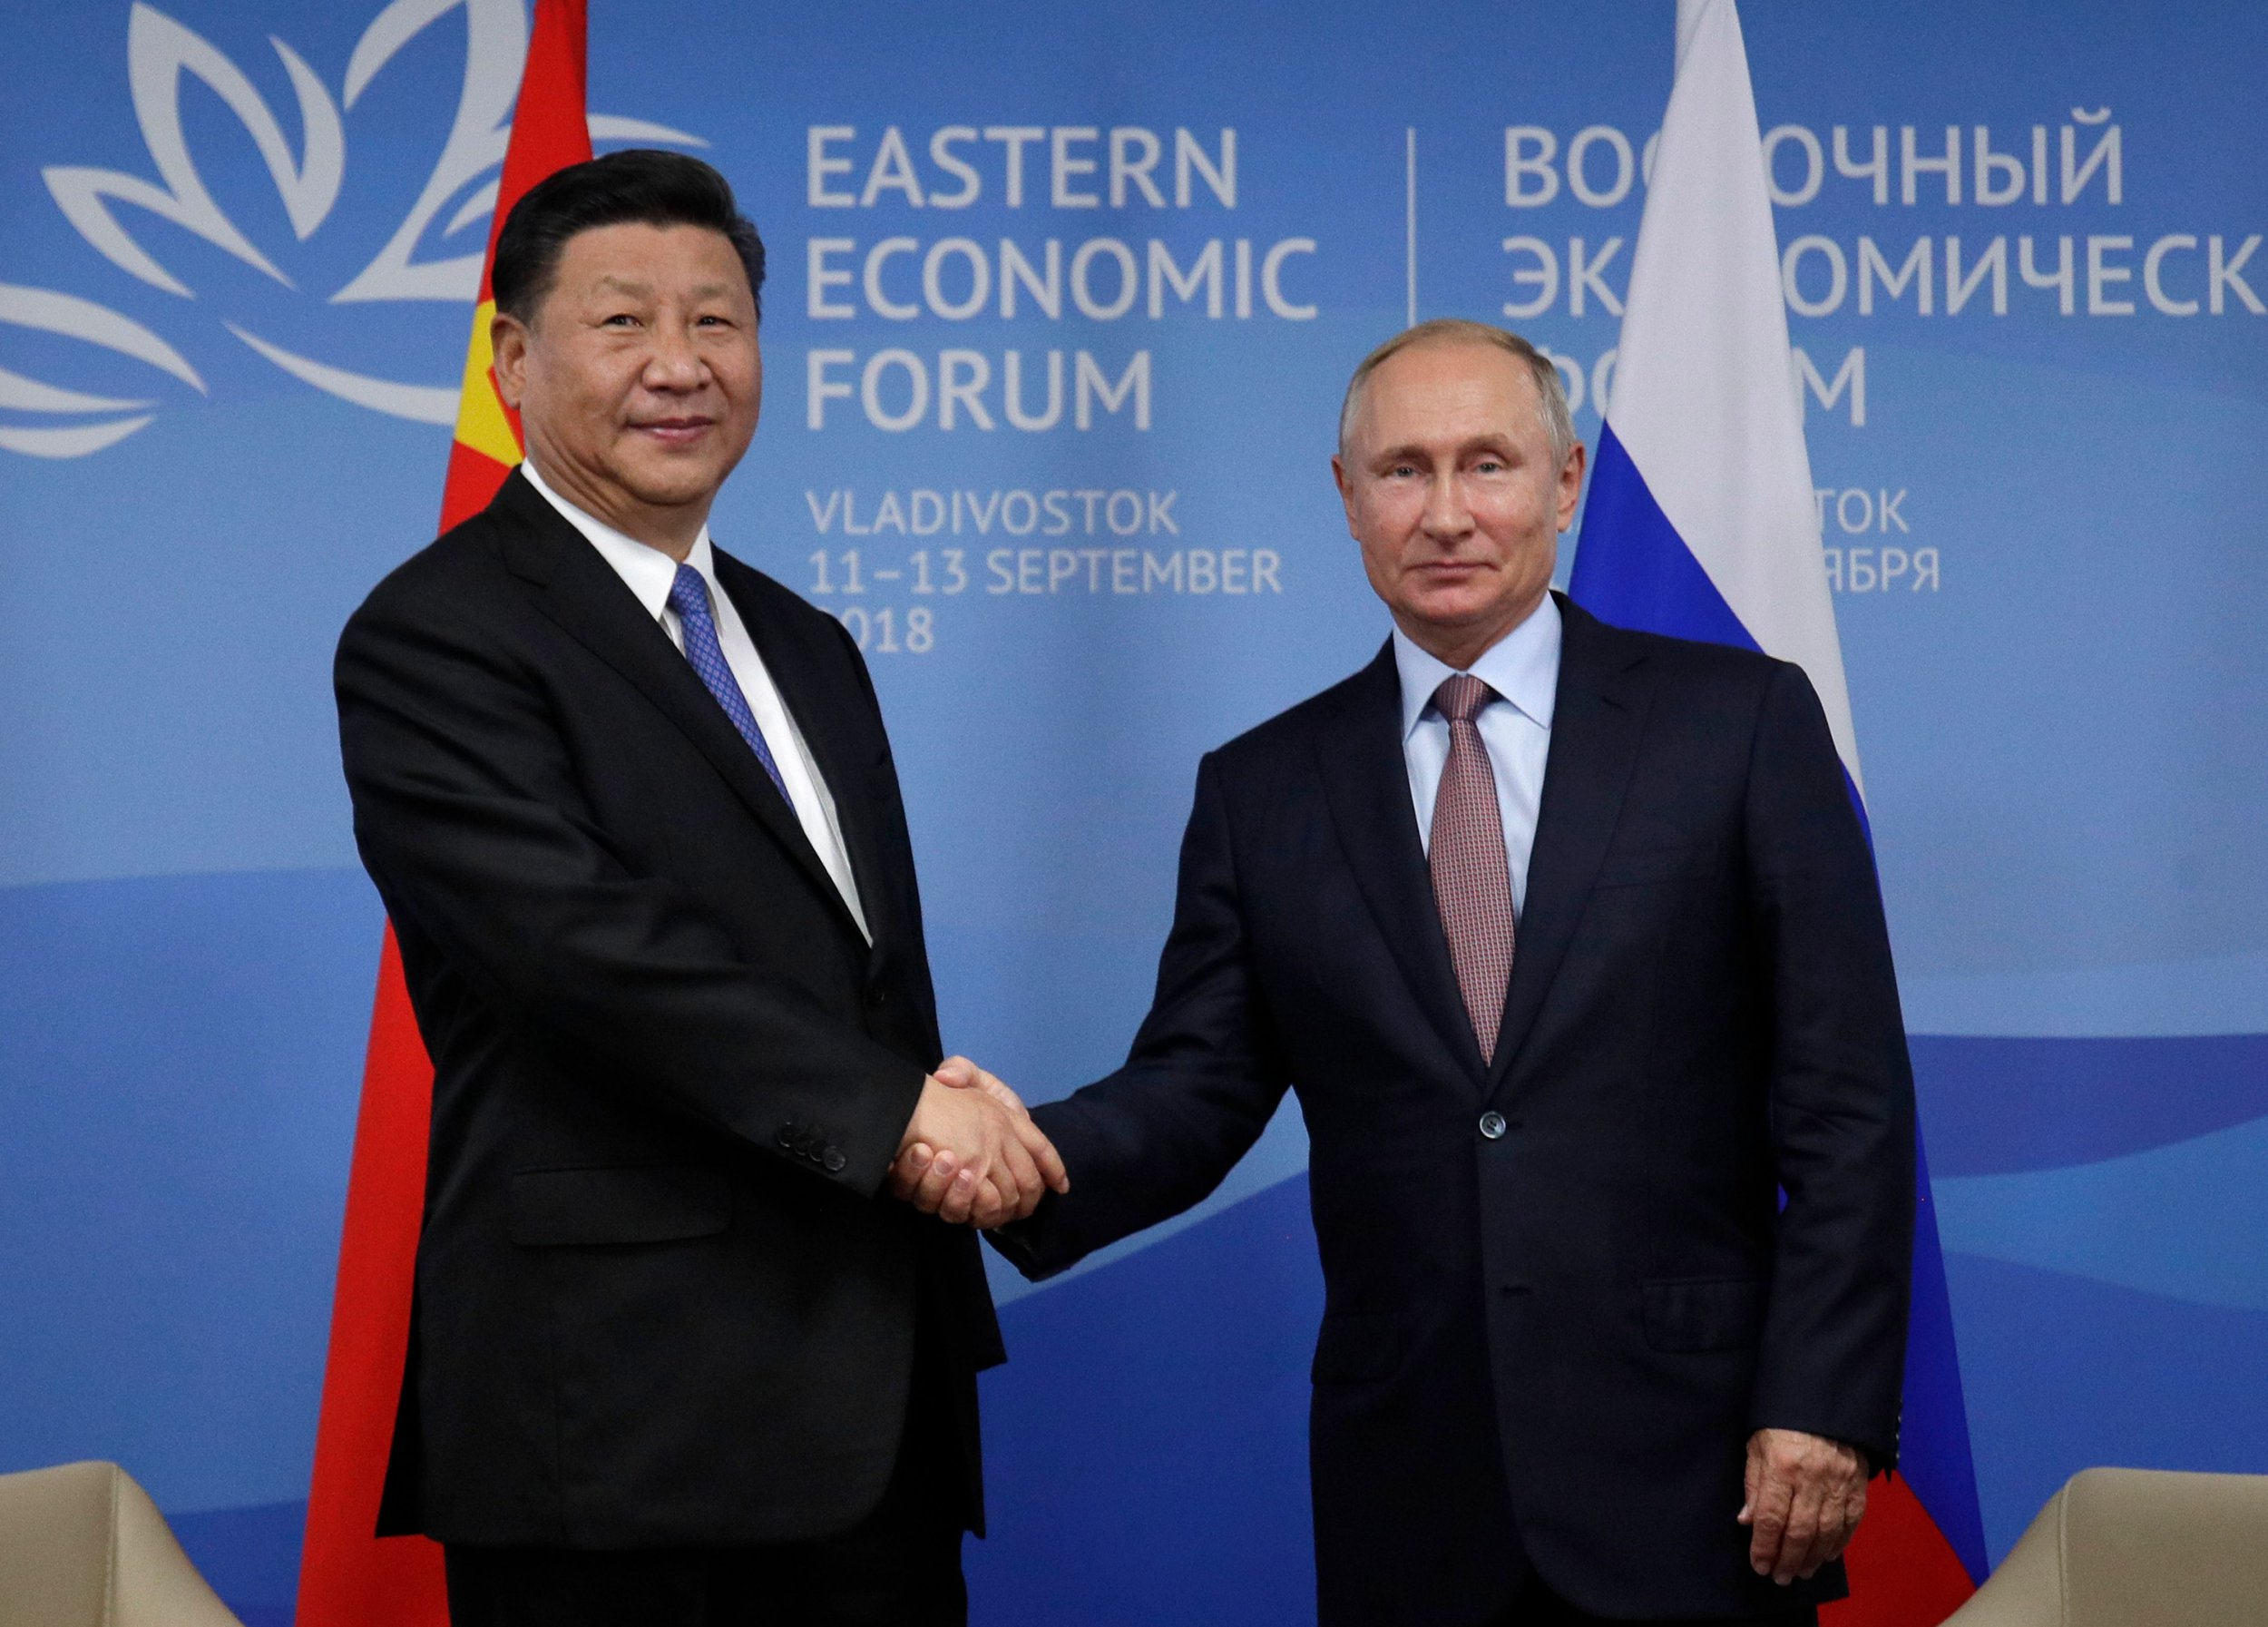 Russian President Vladimir Putin (R) meets with his Chinese counterpart Xi Jinping on the sidelines of the Eastern Economic Forum in Vladivostok on September 11, 2018. (Photo by Dmitri Lovetsky / POOL / AFP)DMITRI LOVETSKY/AFP/Getty Images